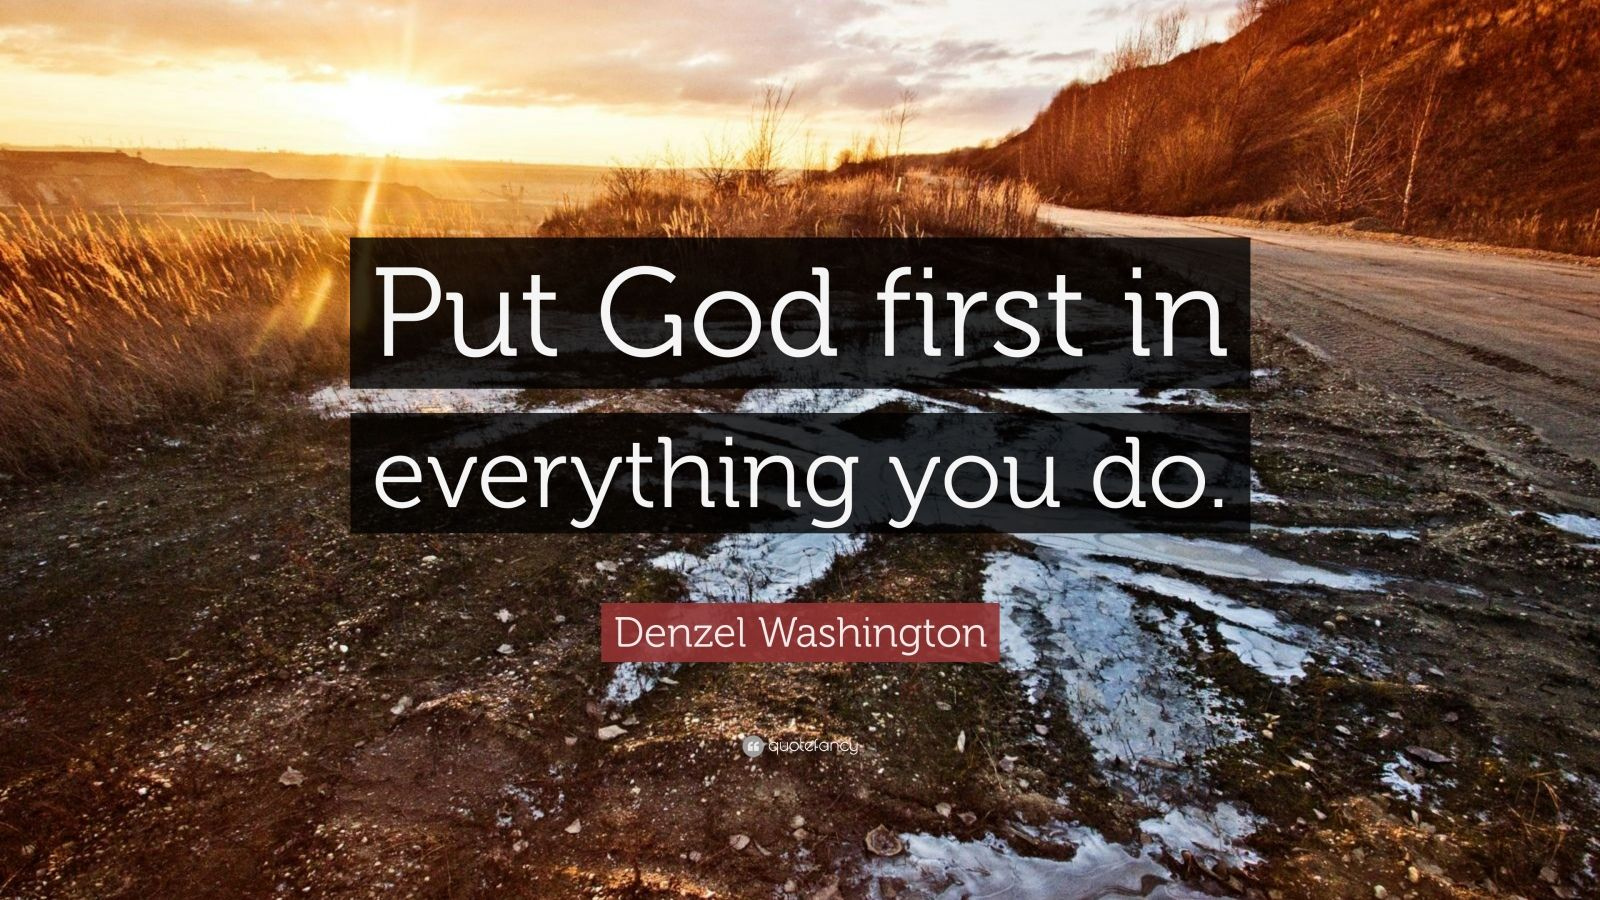 Denzel Washington Quote Wallpaper Denzel Washington Quote Put God First In Everything You